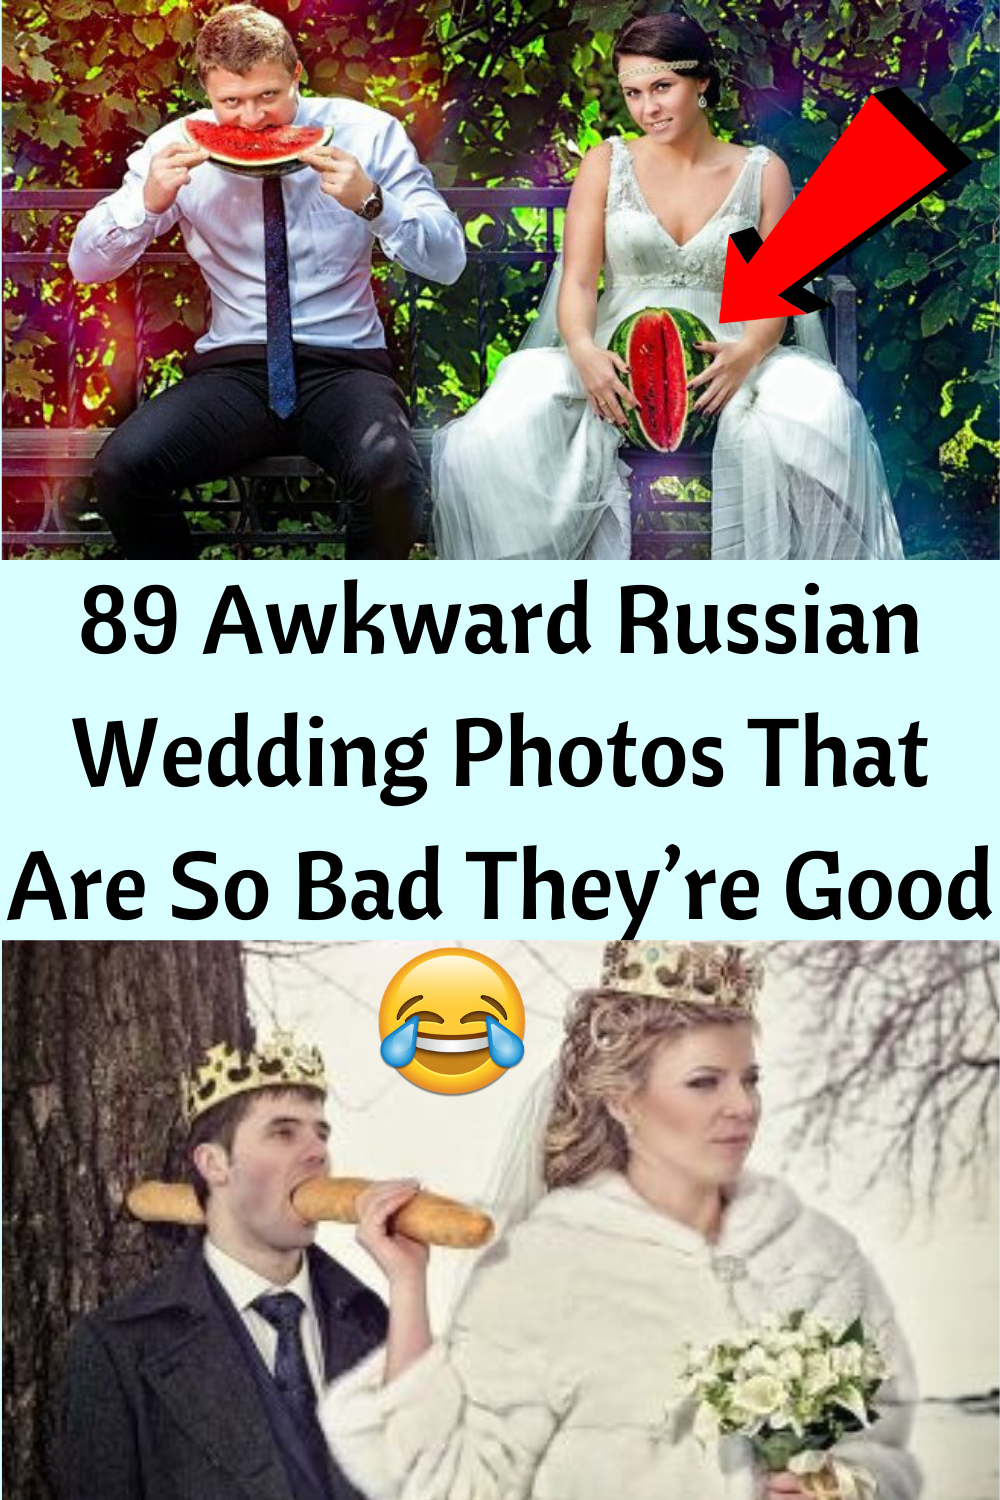 89 Awkward Russian Wedding Photos That Are So Bad They're